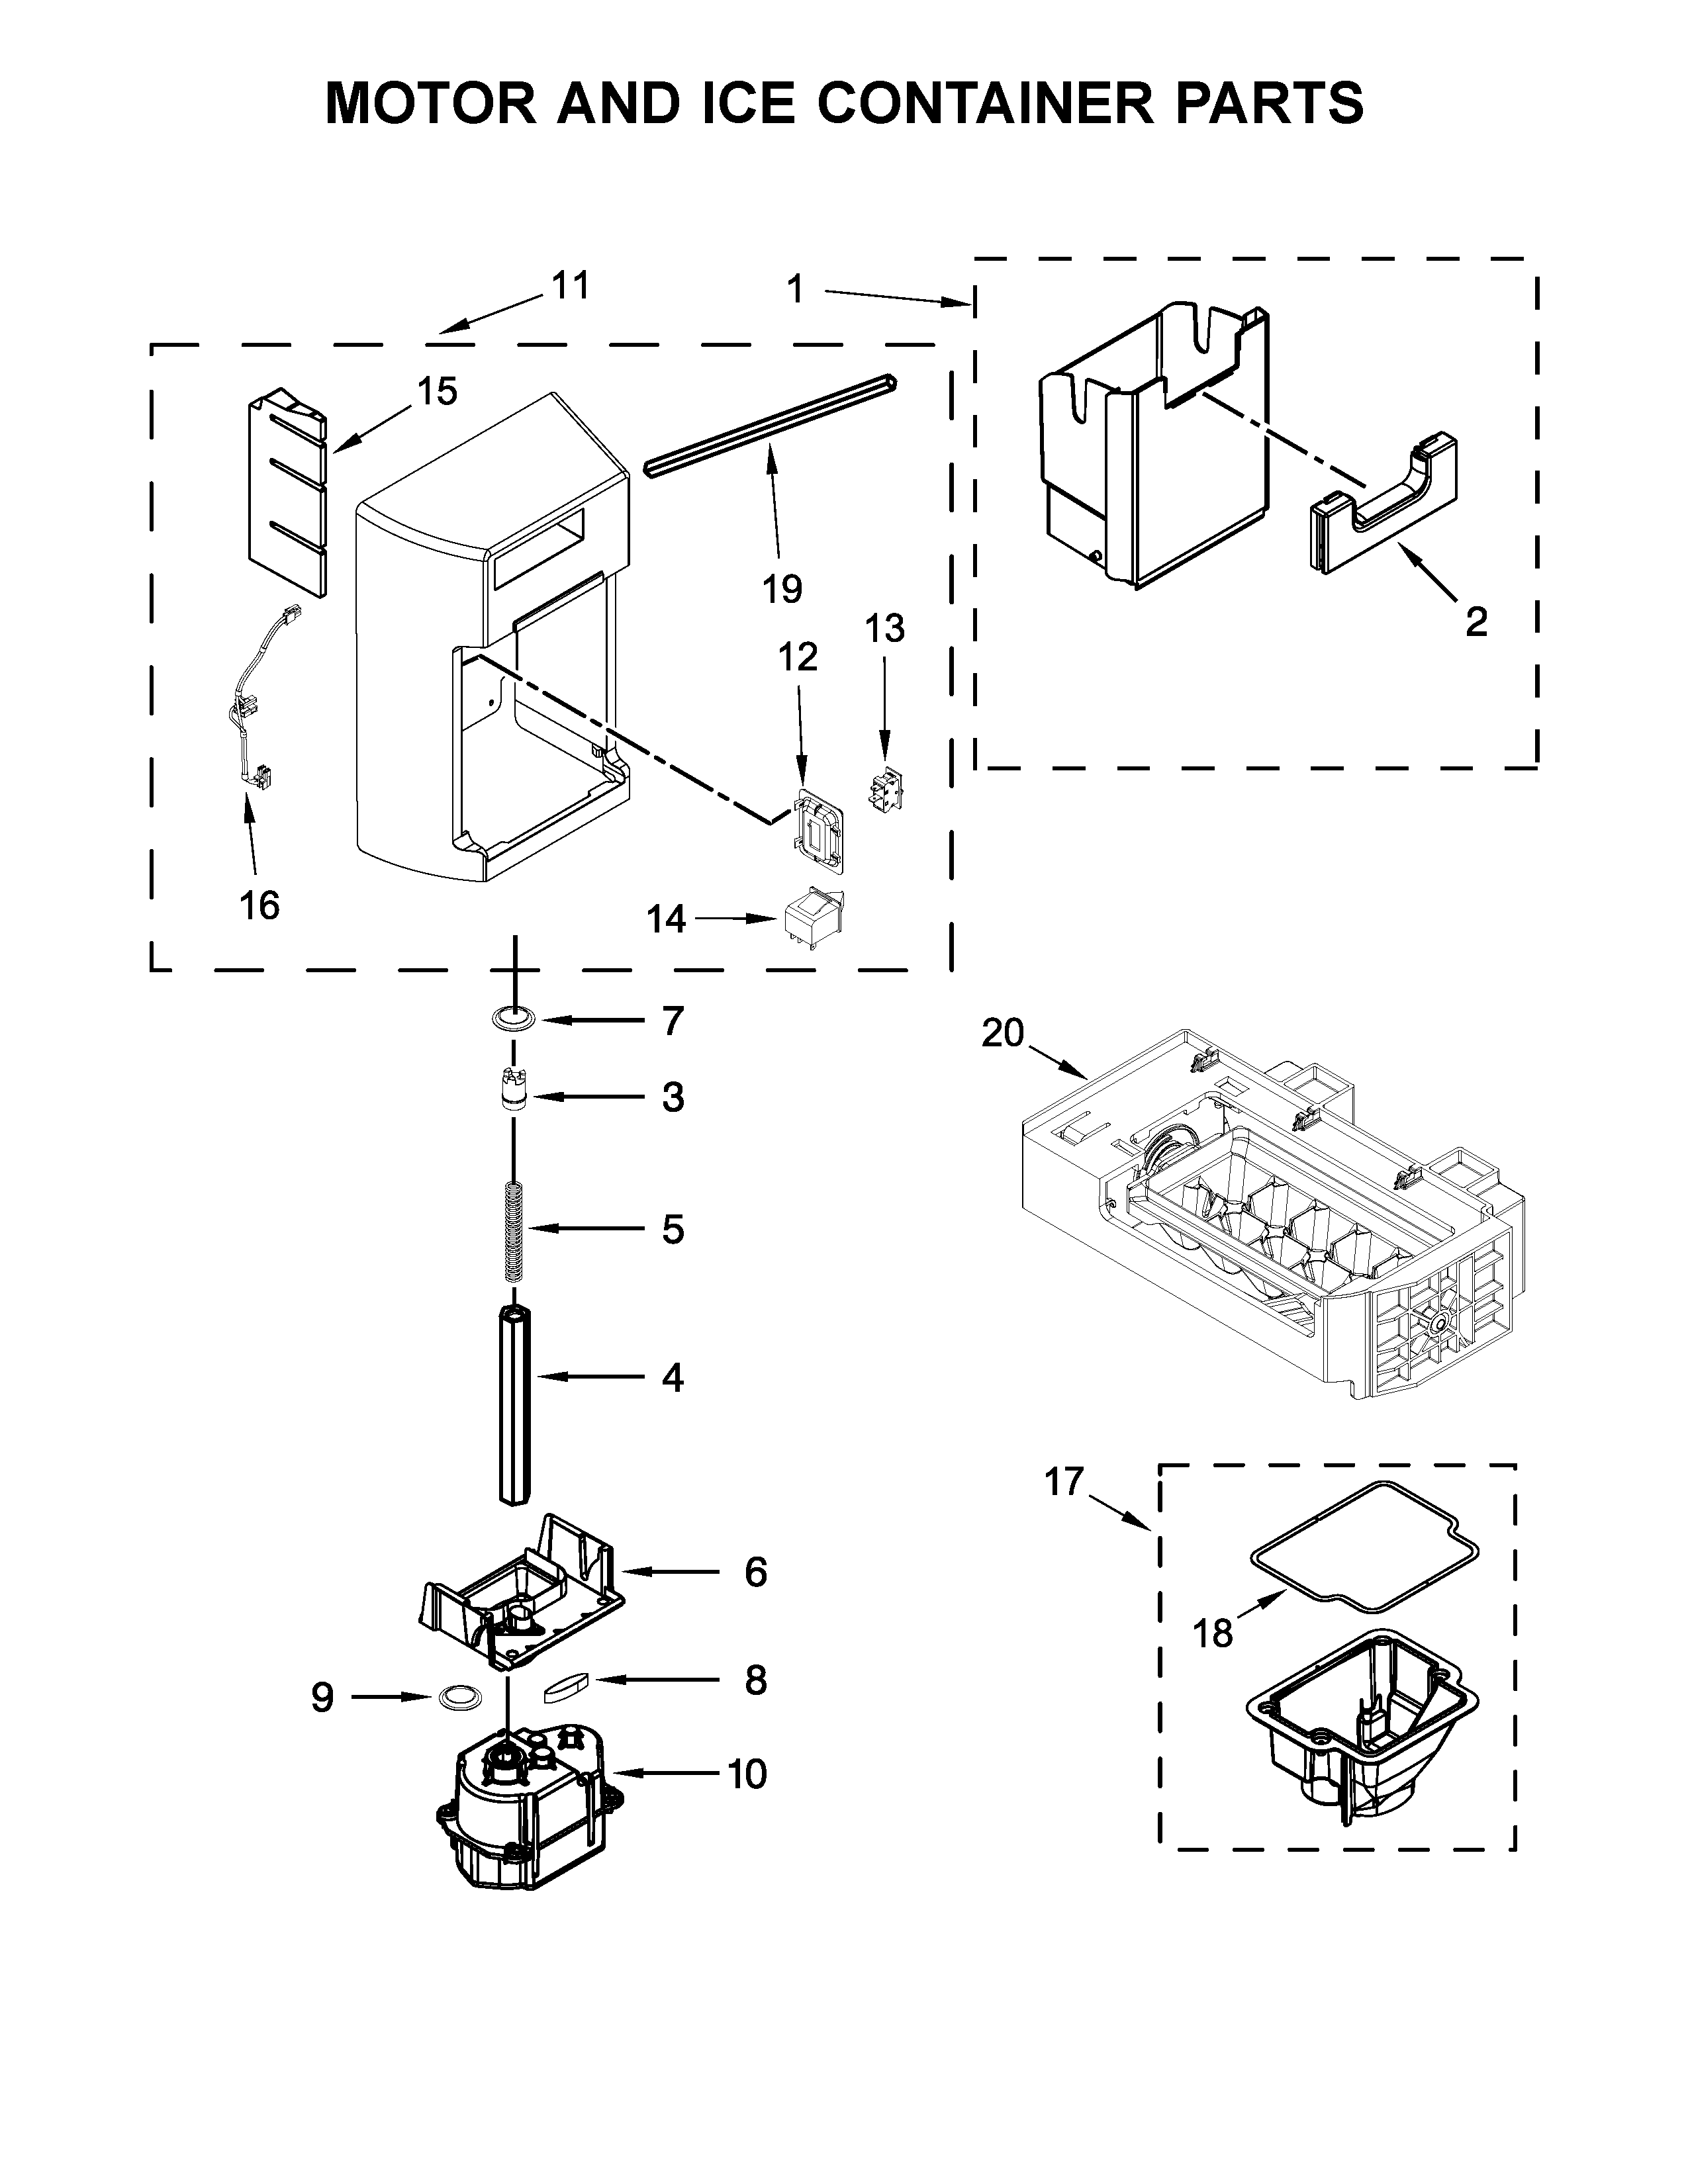 Kenmore 10651332710 motor and ice container parts diagram